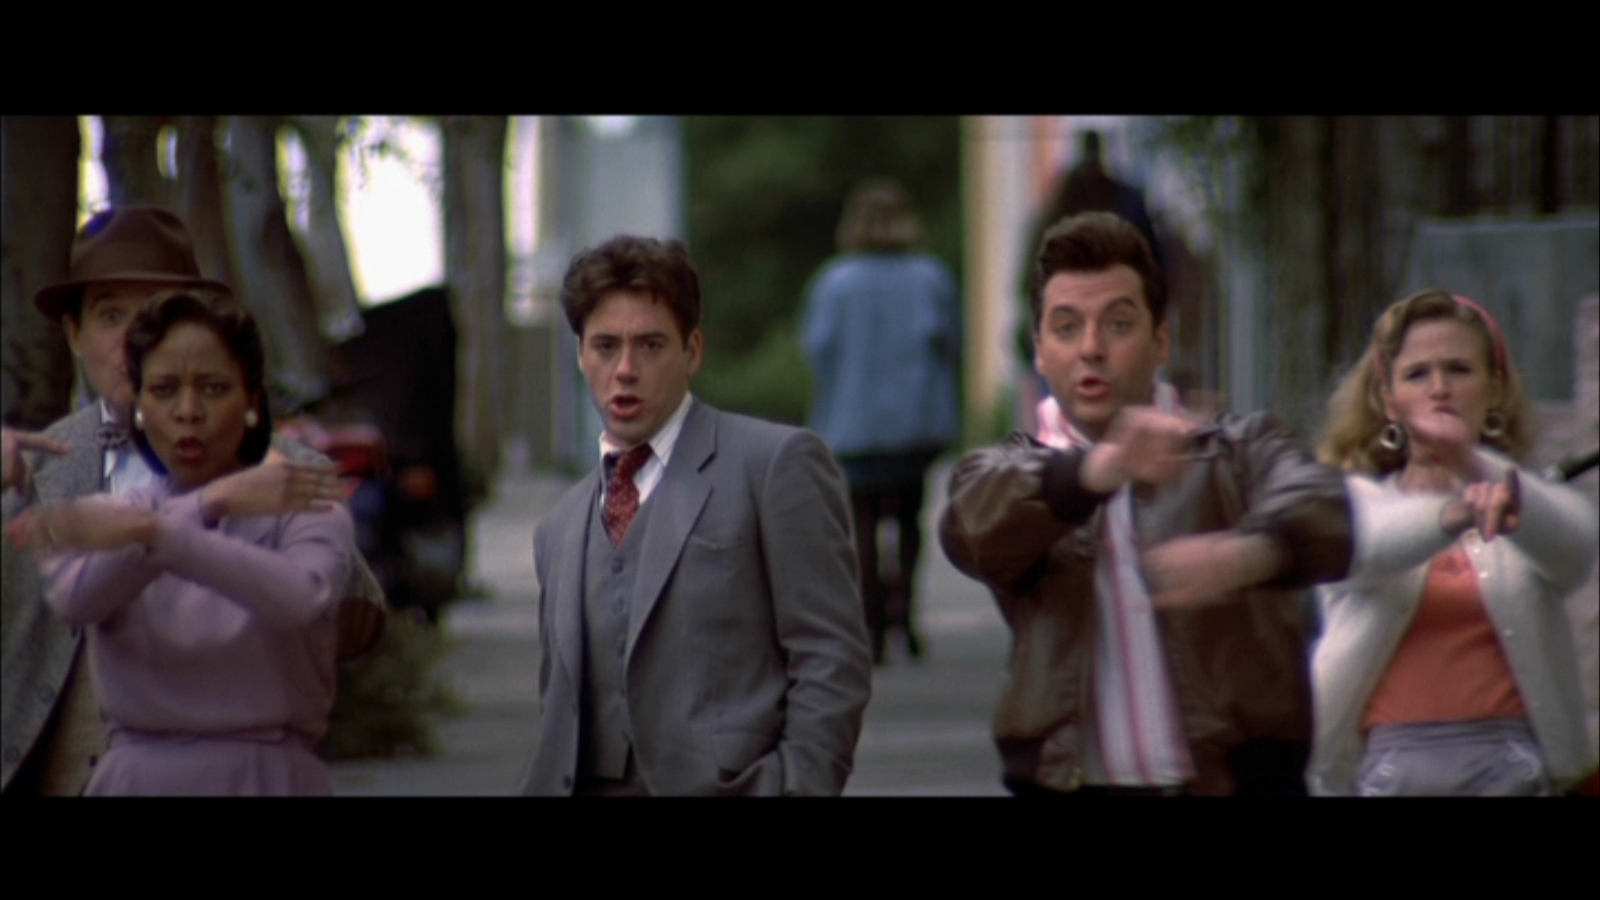 Robert in 'Heart and Souls' - Robert Downey Jr. Image ...